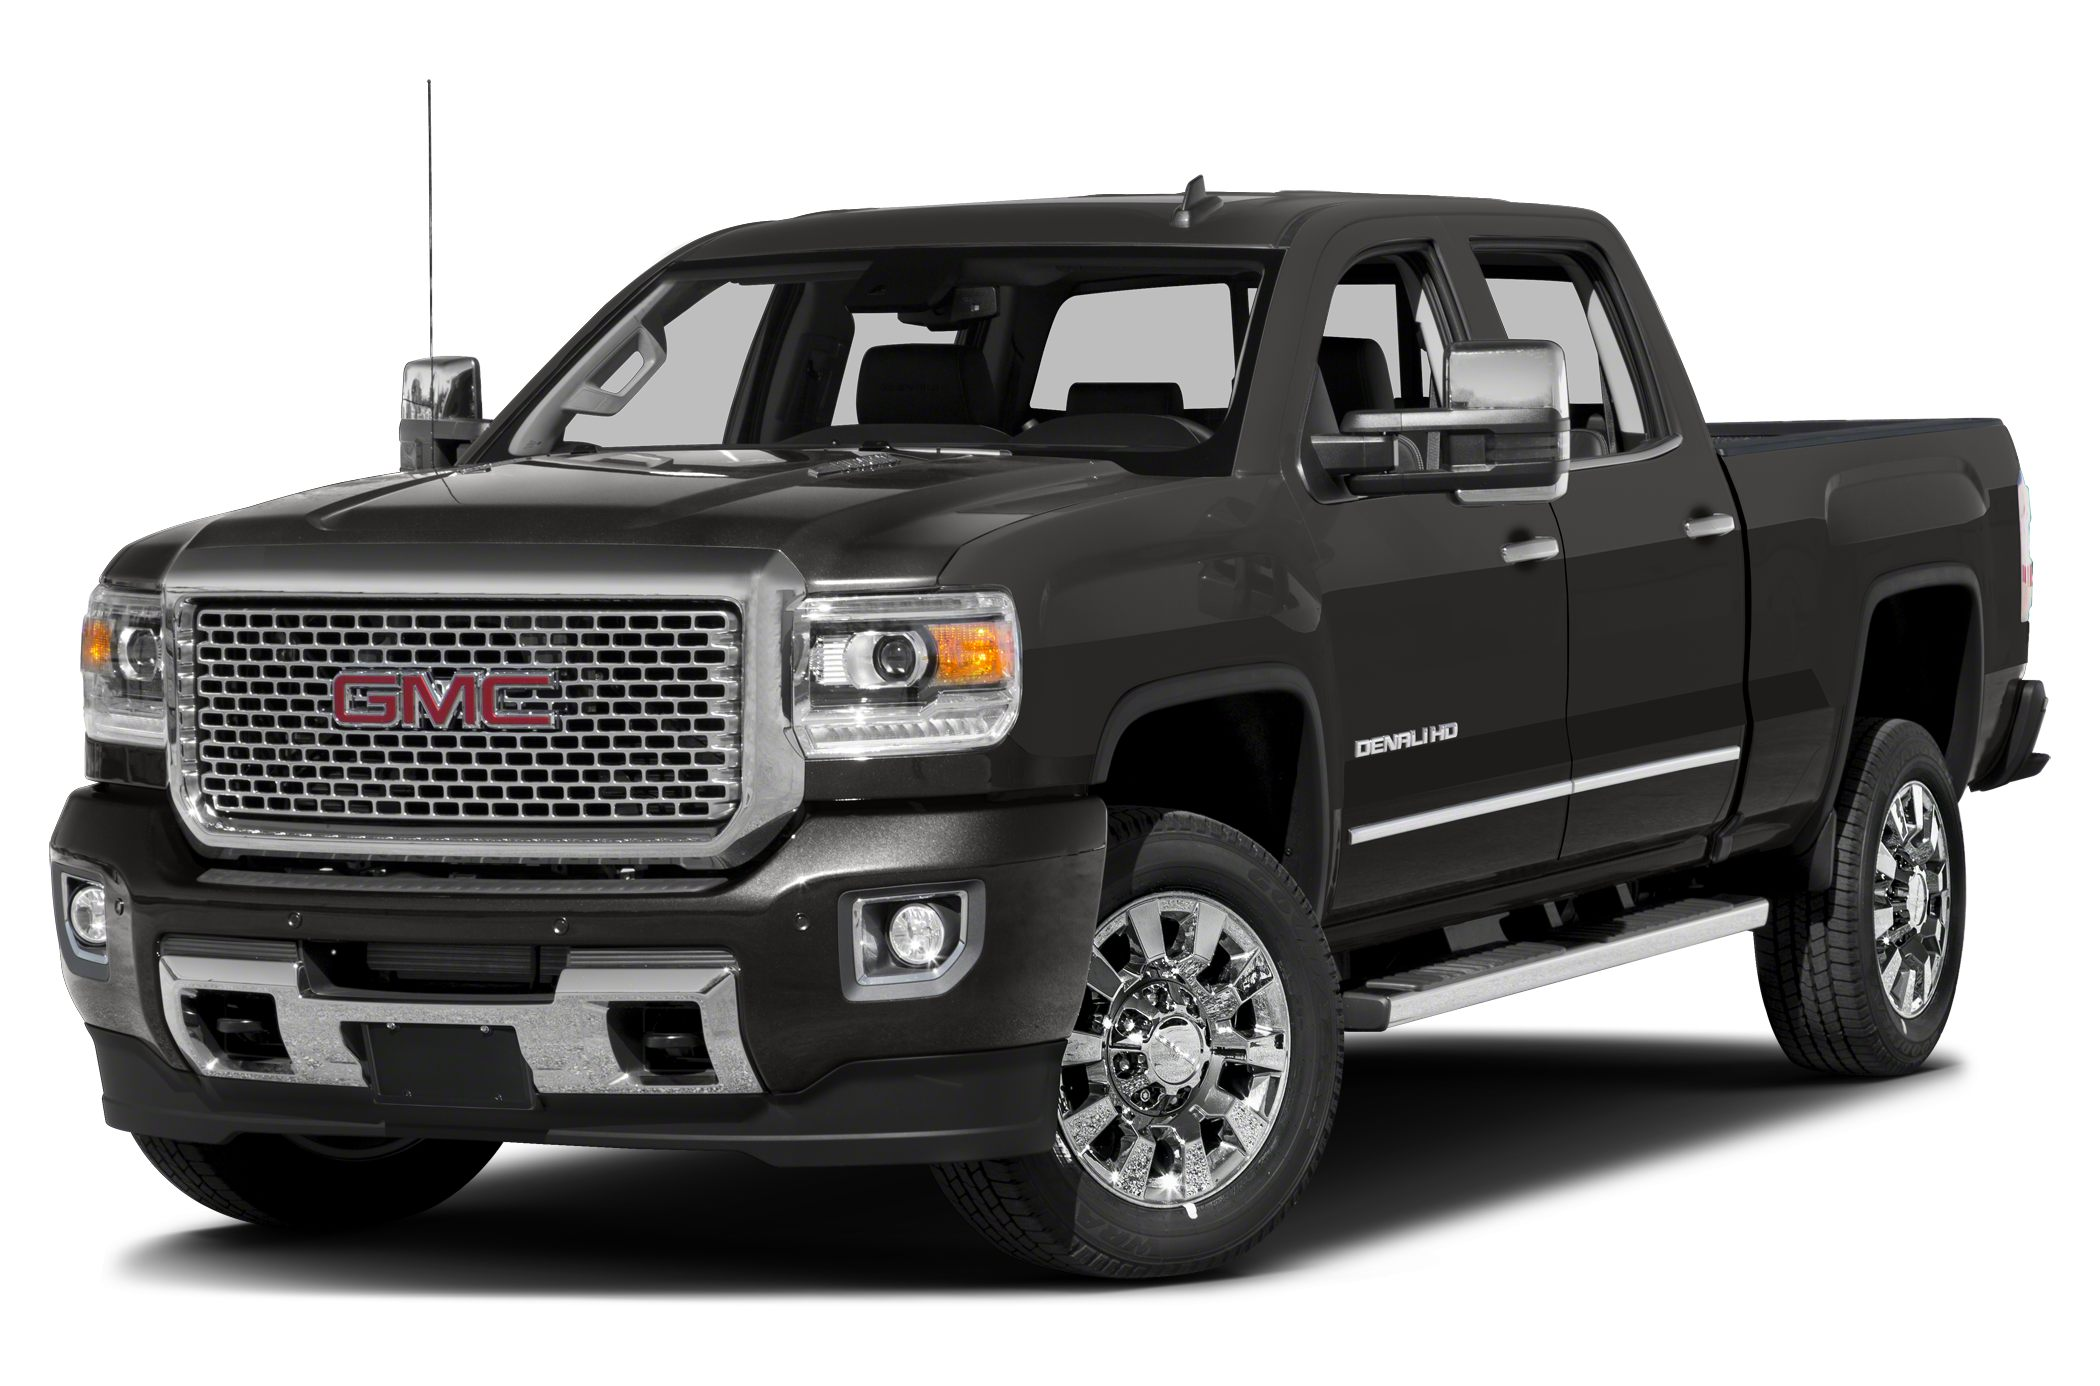 2017 Gmc Sierra 2500hd Denali 4x4 Crew Cab 6 Ft Box 153 7 In Wb Specs And Prices